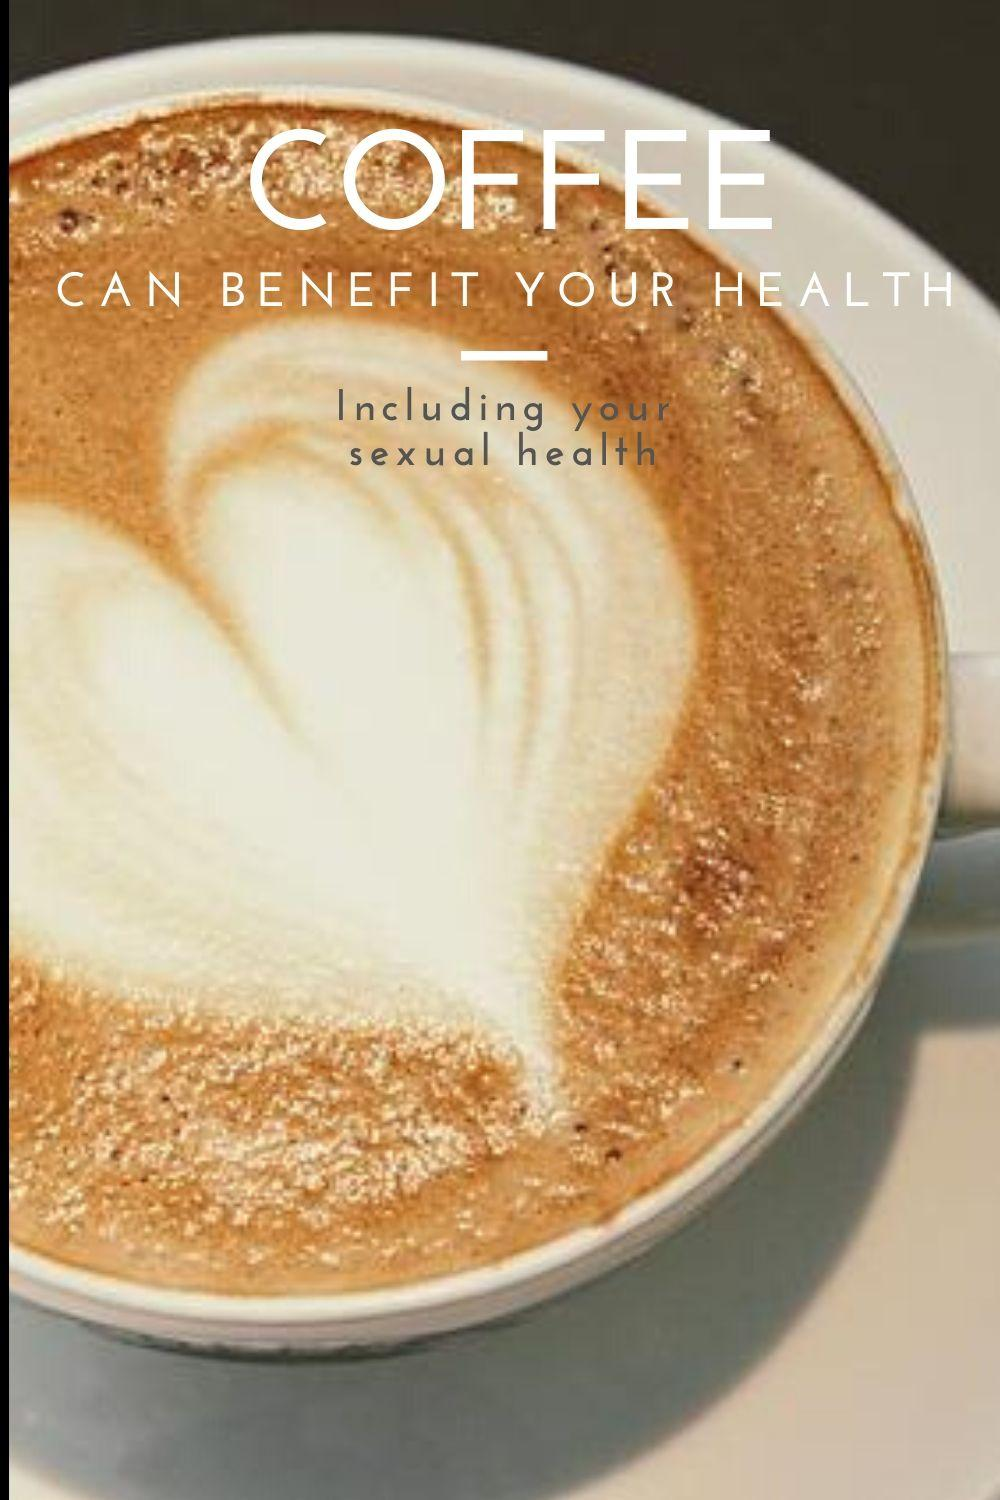 The benefits of coffee to overall health, including sexual health